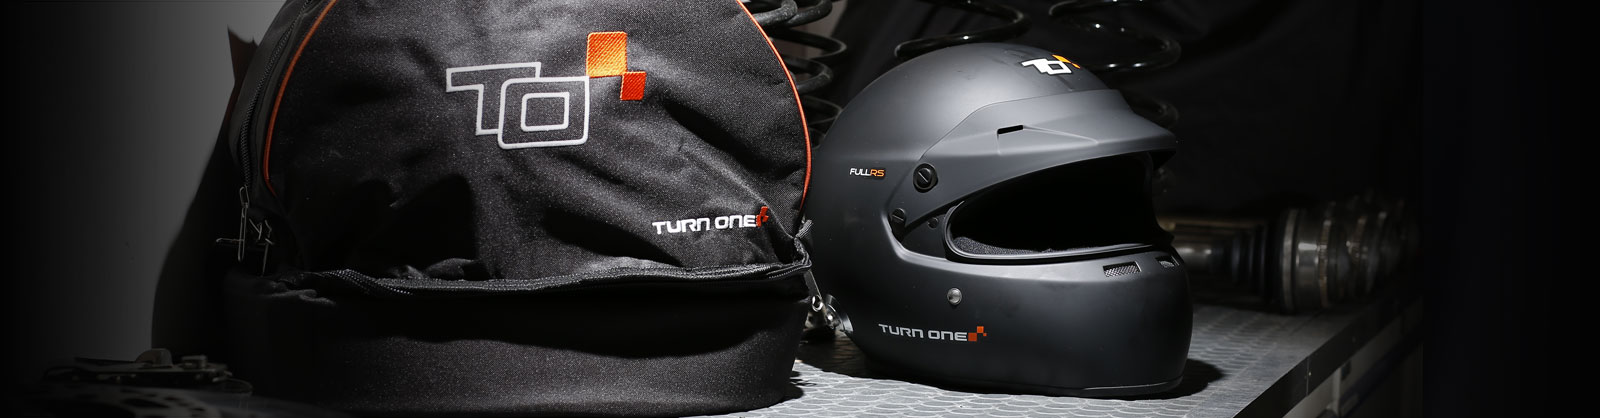 http://www.turnone-products.com/wp-content/uploads/Slider_HP_Driver_Helmets.jpg